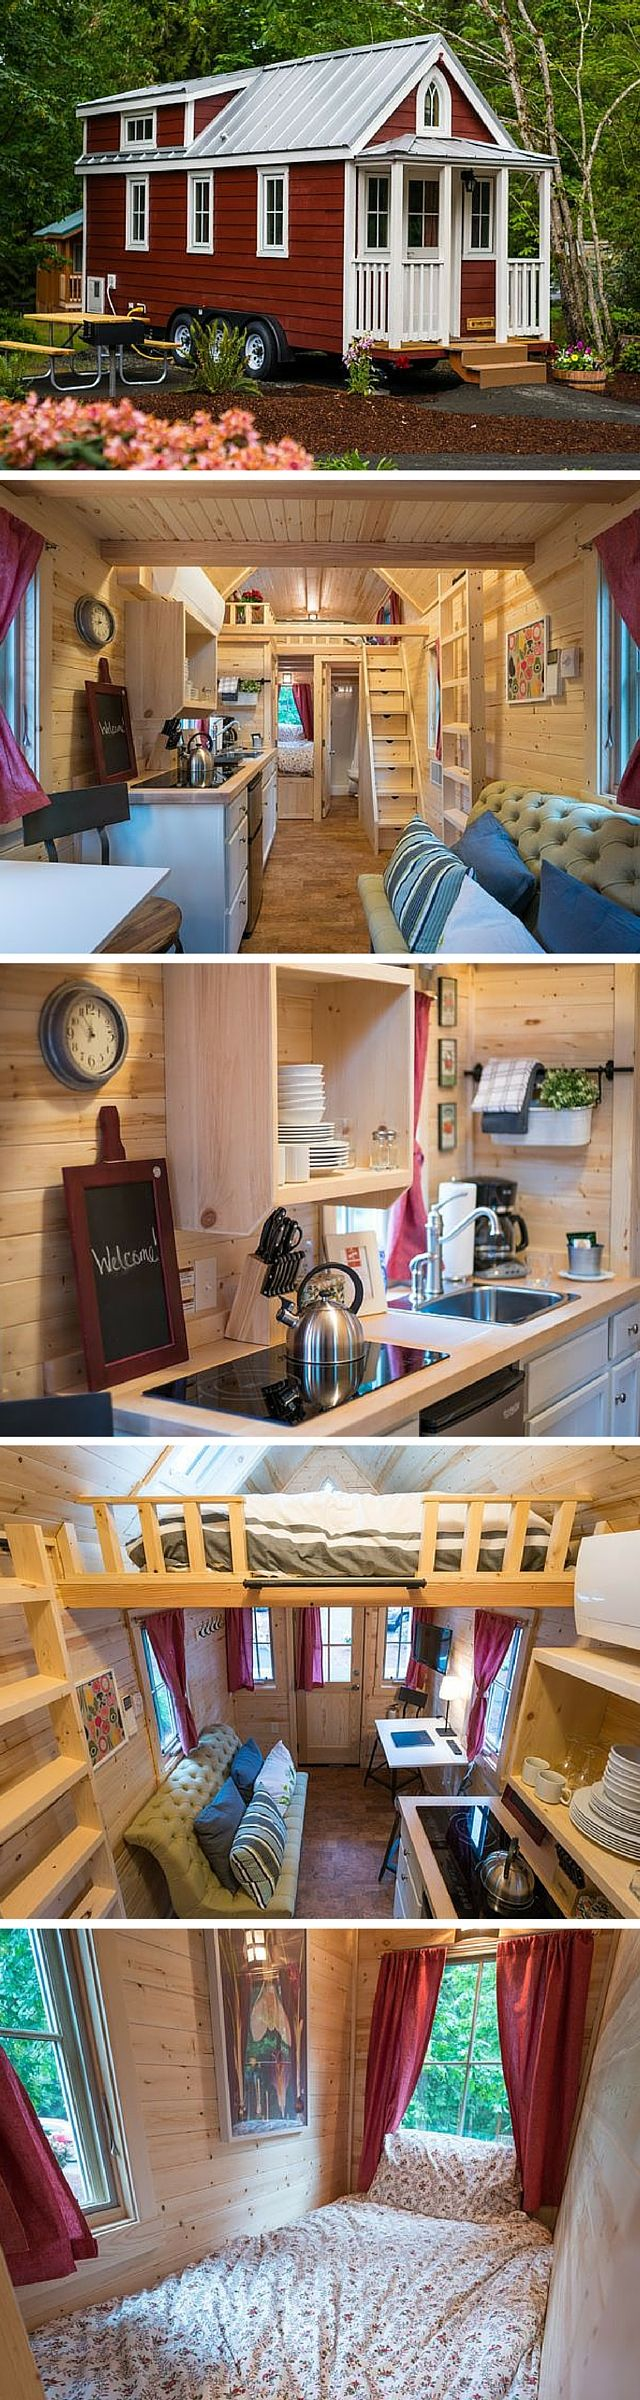 Scarlett the tiny house. A 233 sq ft home on wheels you can rent in the Mt. Hood Village Resort in Oregon.